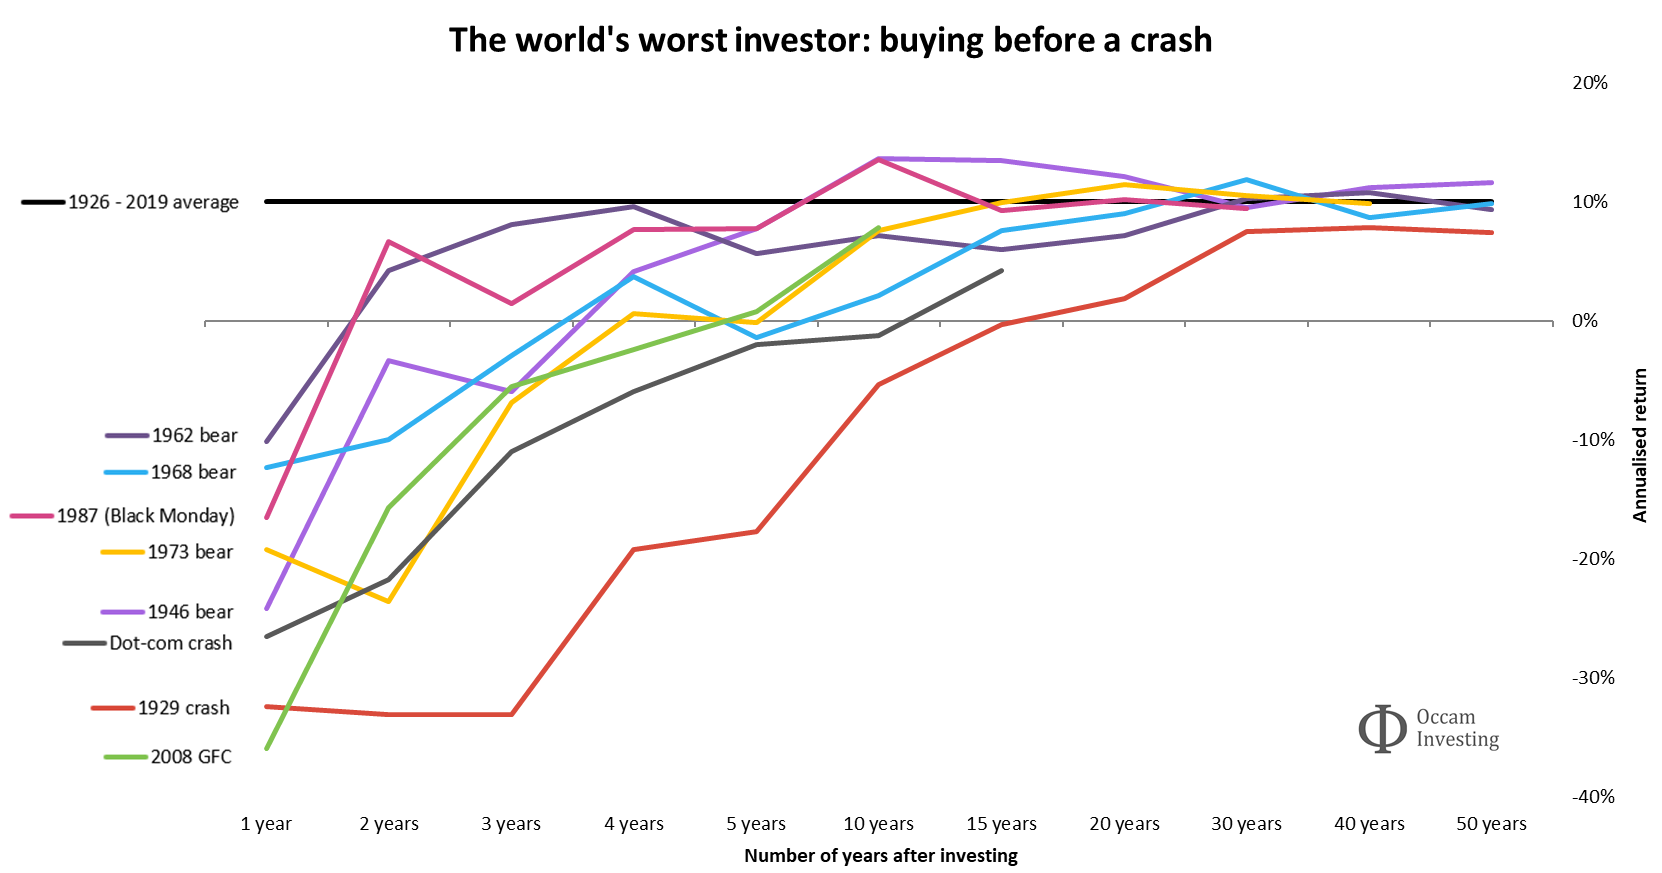 Buying before a crash